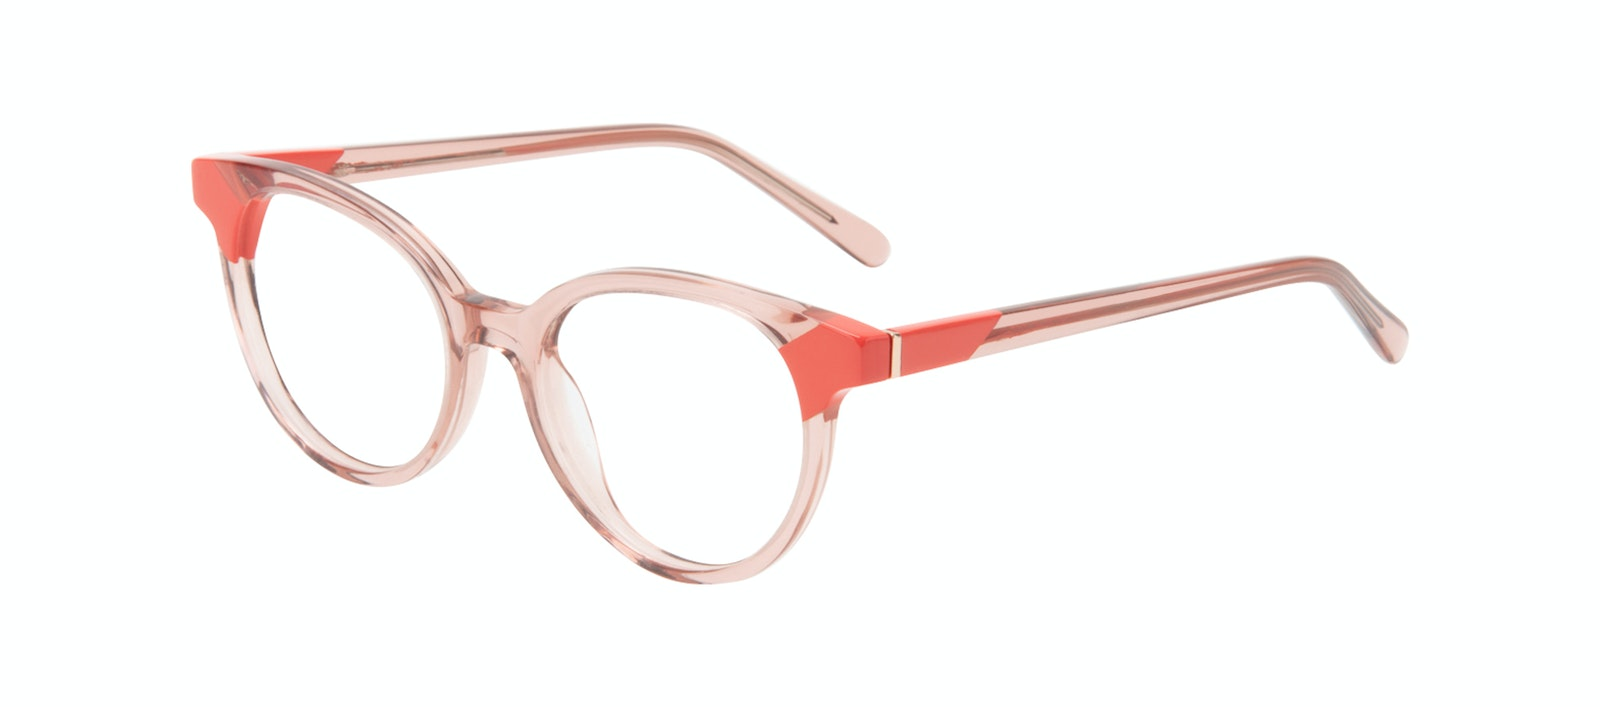 Affordable Fashion Glasses Round Eyeglasses Women Bright Pink Coral Tilt